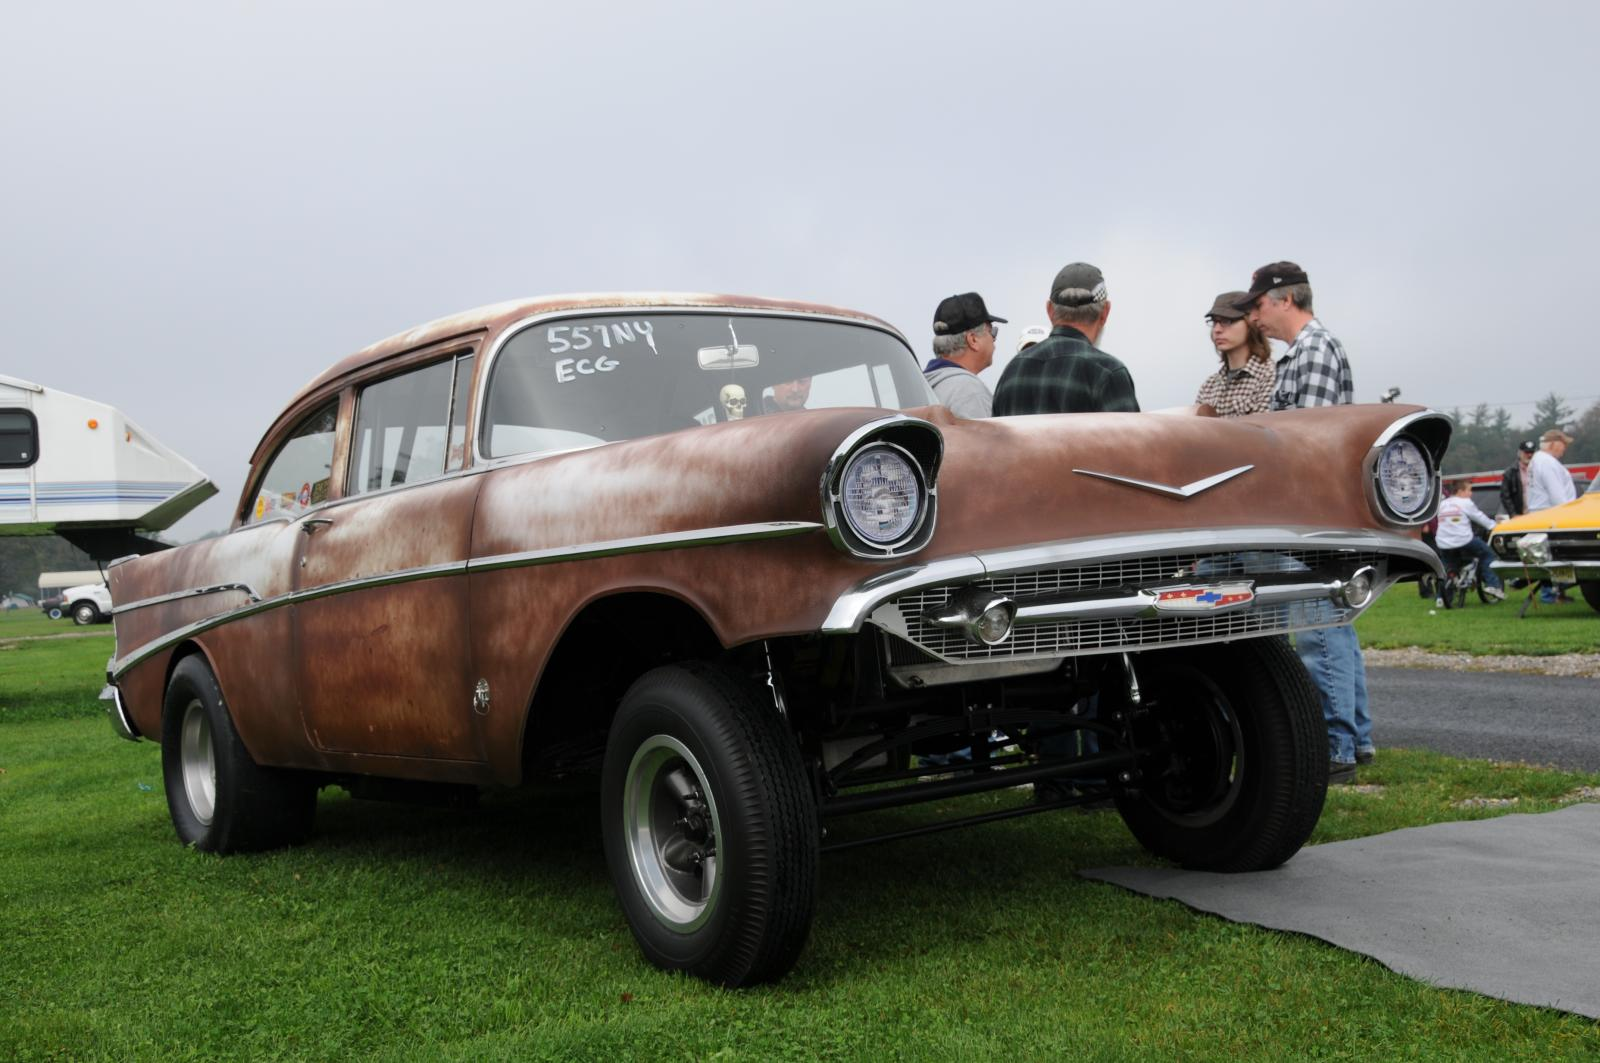 57 Chevy Gasser | Flickr - Photo Sharing!